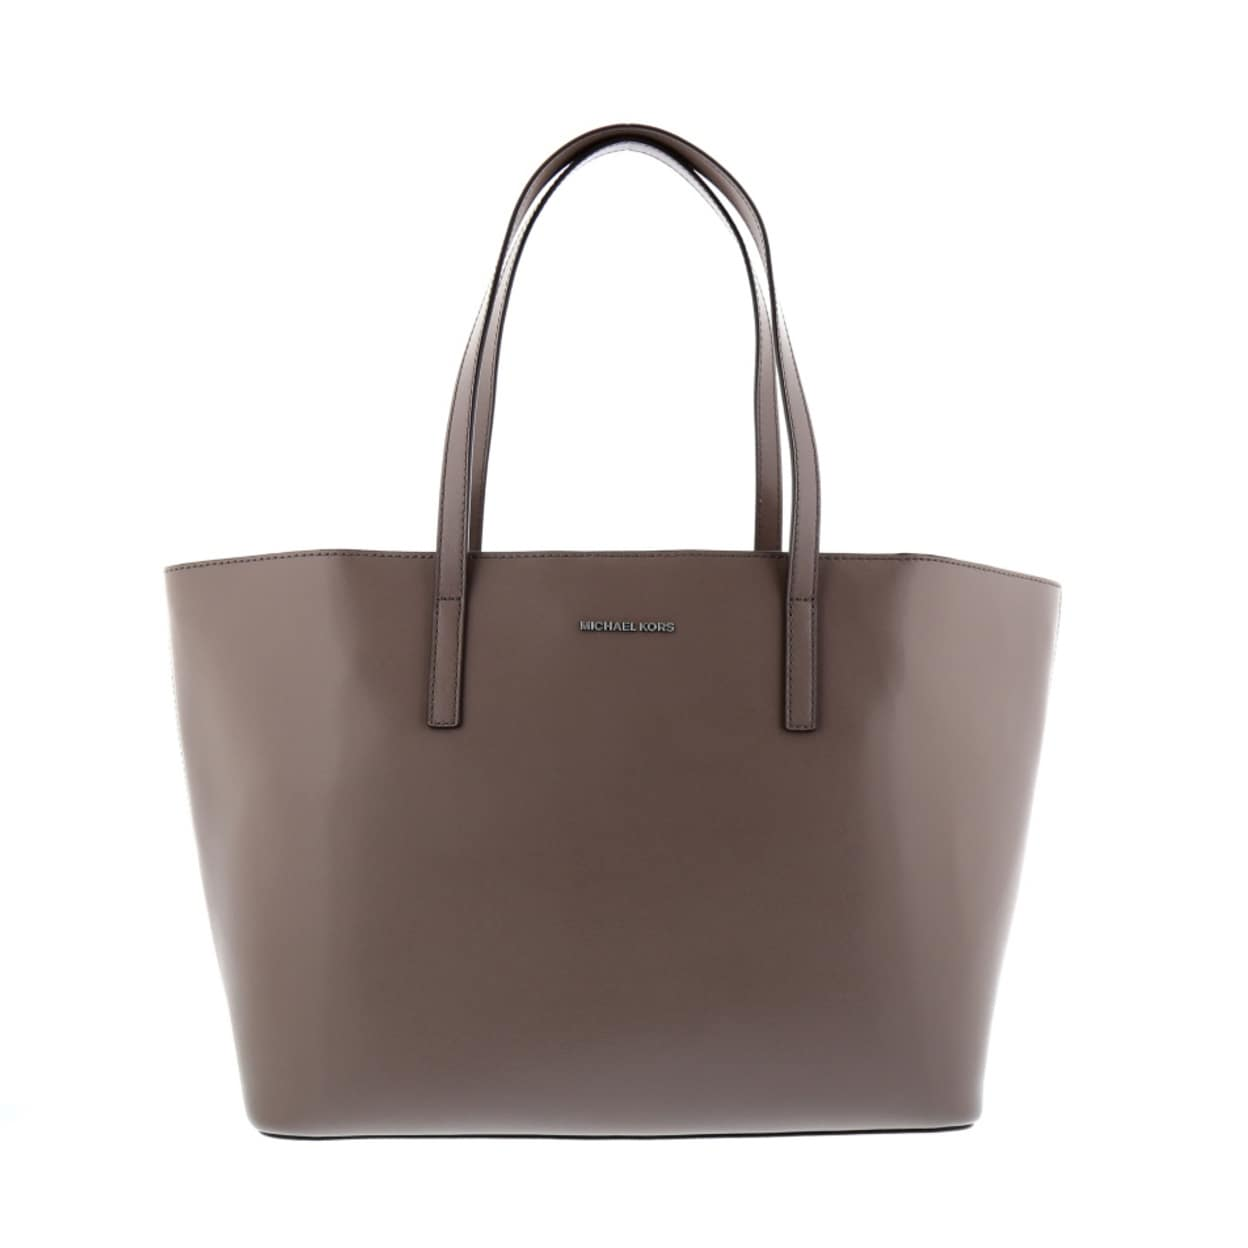 6c41763cec0a2 Shop MICHAEL Michael Kors Emry Large Tote - Free Shipping Today - Overstock  - 23073138